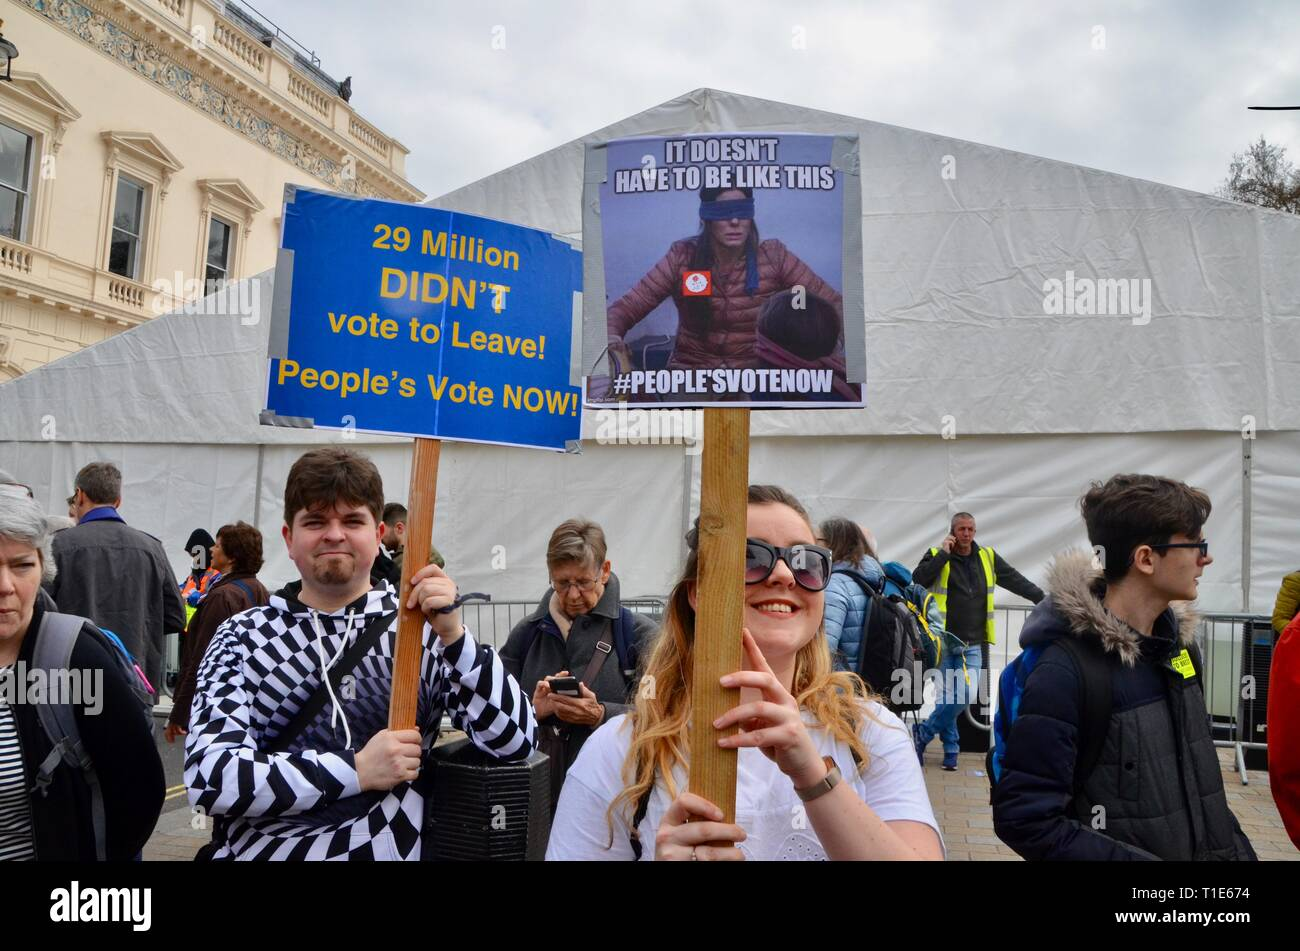 scenes from the anti brexit pro peoples vote march in london 23rd march 2019 homemade placards - Stock Image